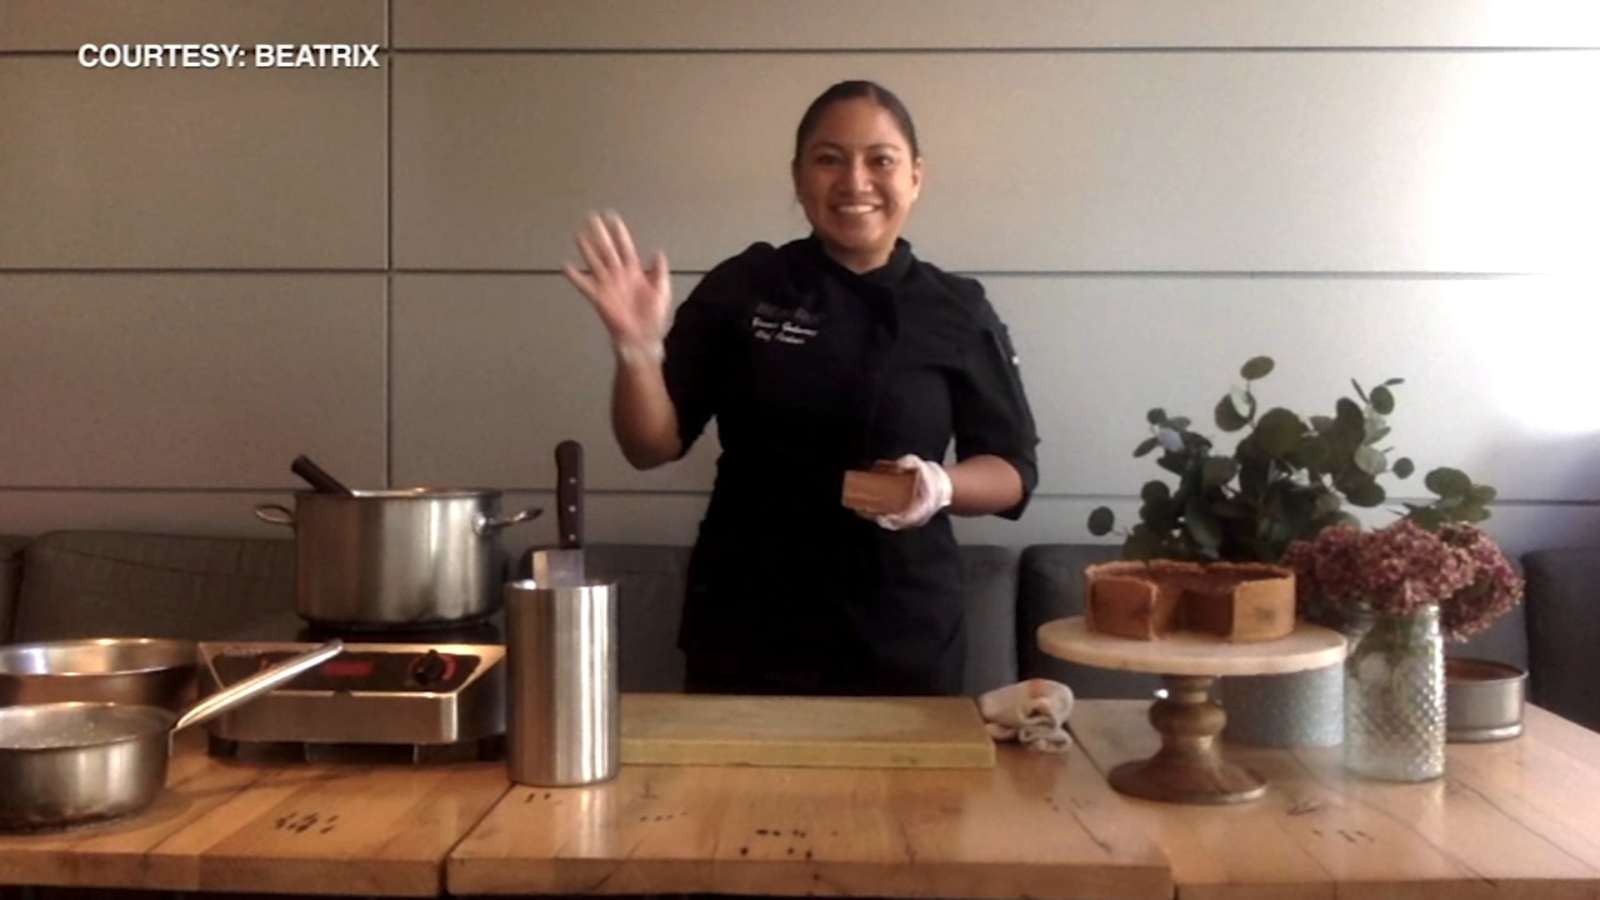 Beatrix chef gives tips on perfect pie ahead of Thanksgiving; restaurant offering online dessert orders